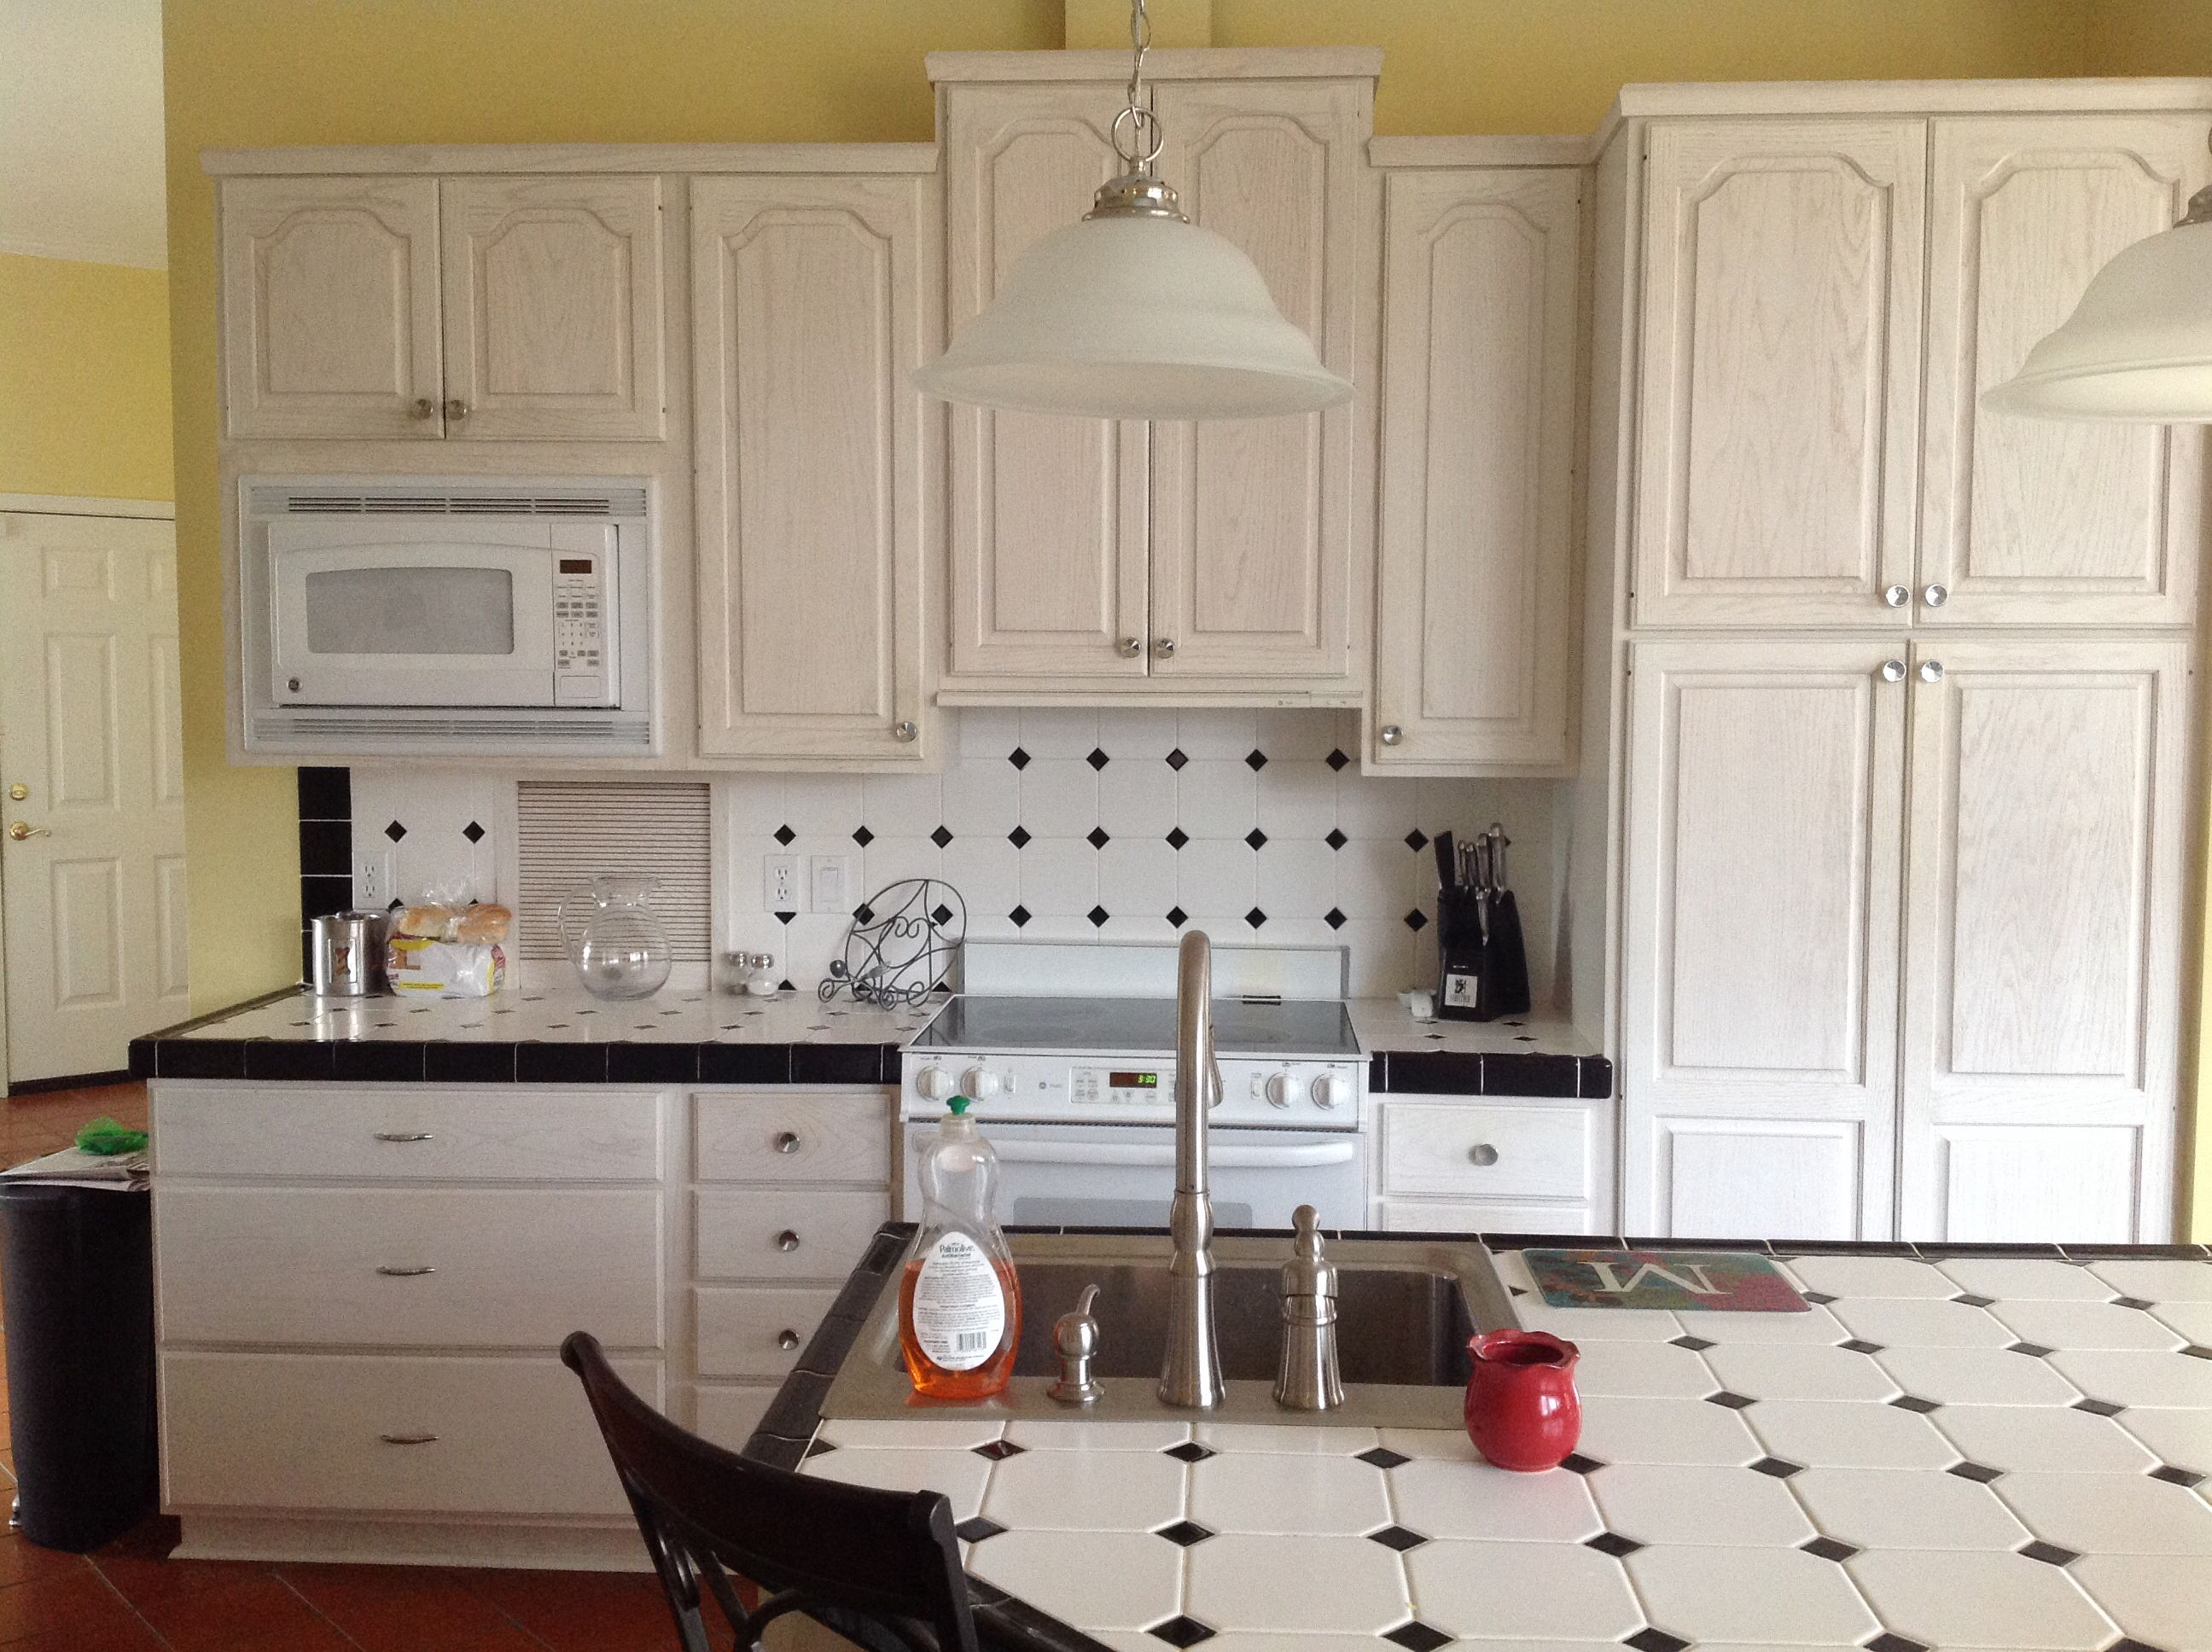 Current Kitchen White Black Tile And Whitewash Pecan Cabinets Vinyl Reddish Floor Yellow Walls Kitchen Cabinet Design Kitchen Design White Kitchen Cabinets